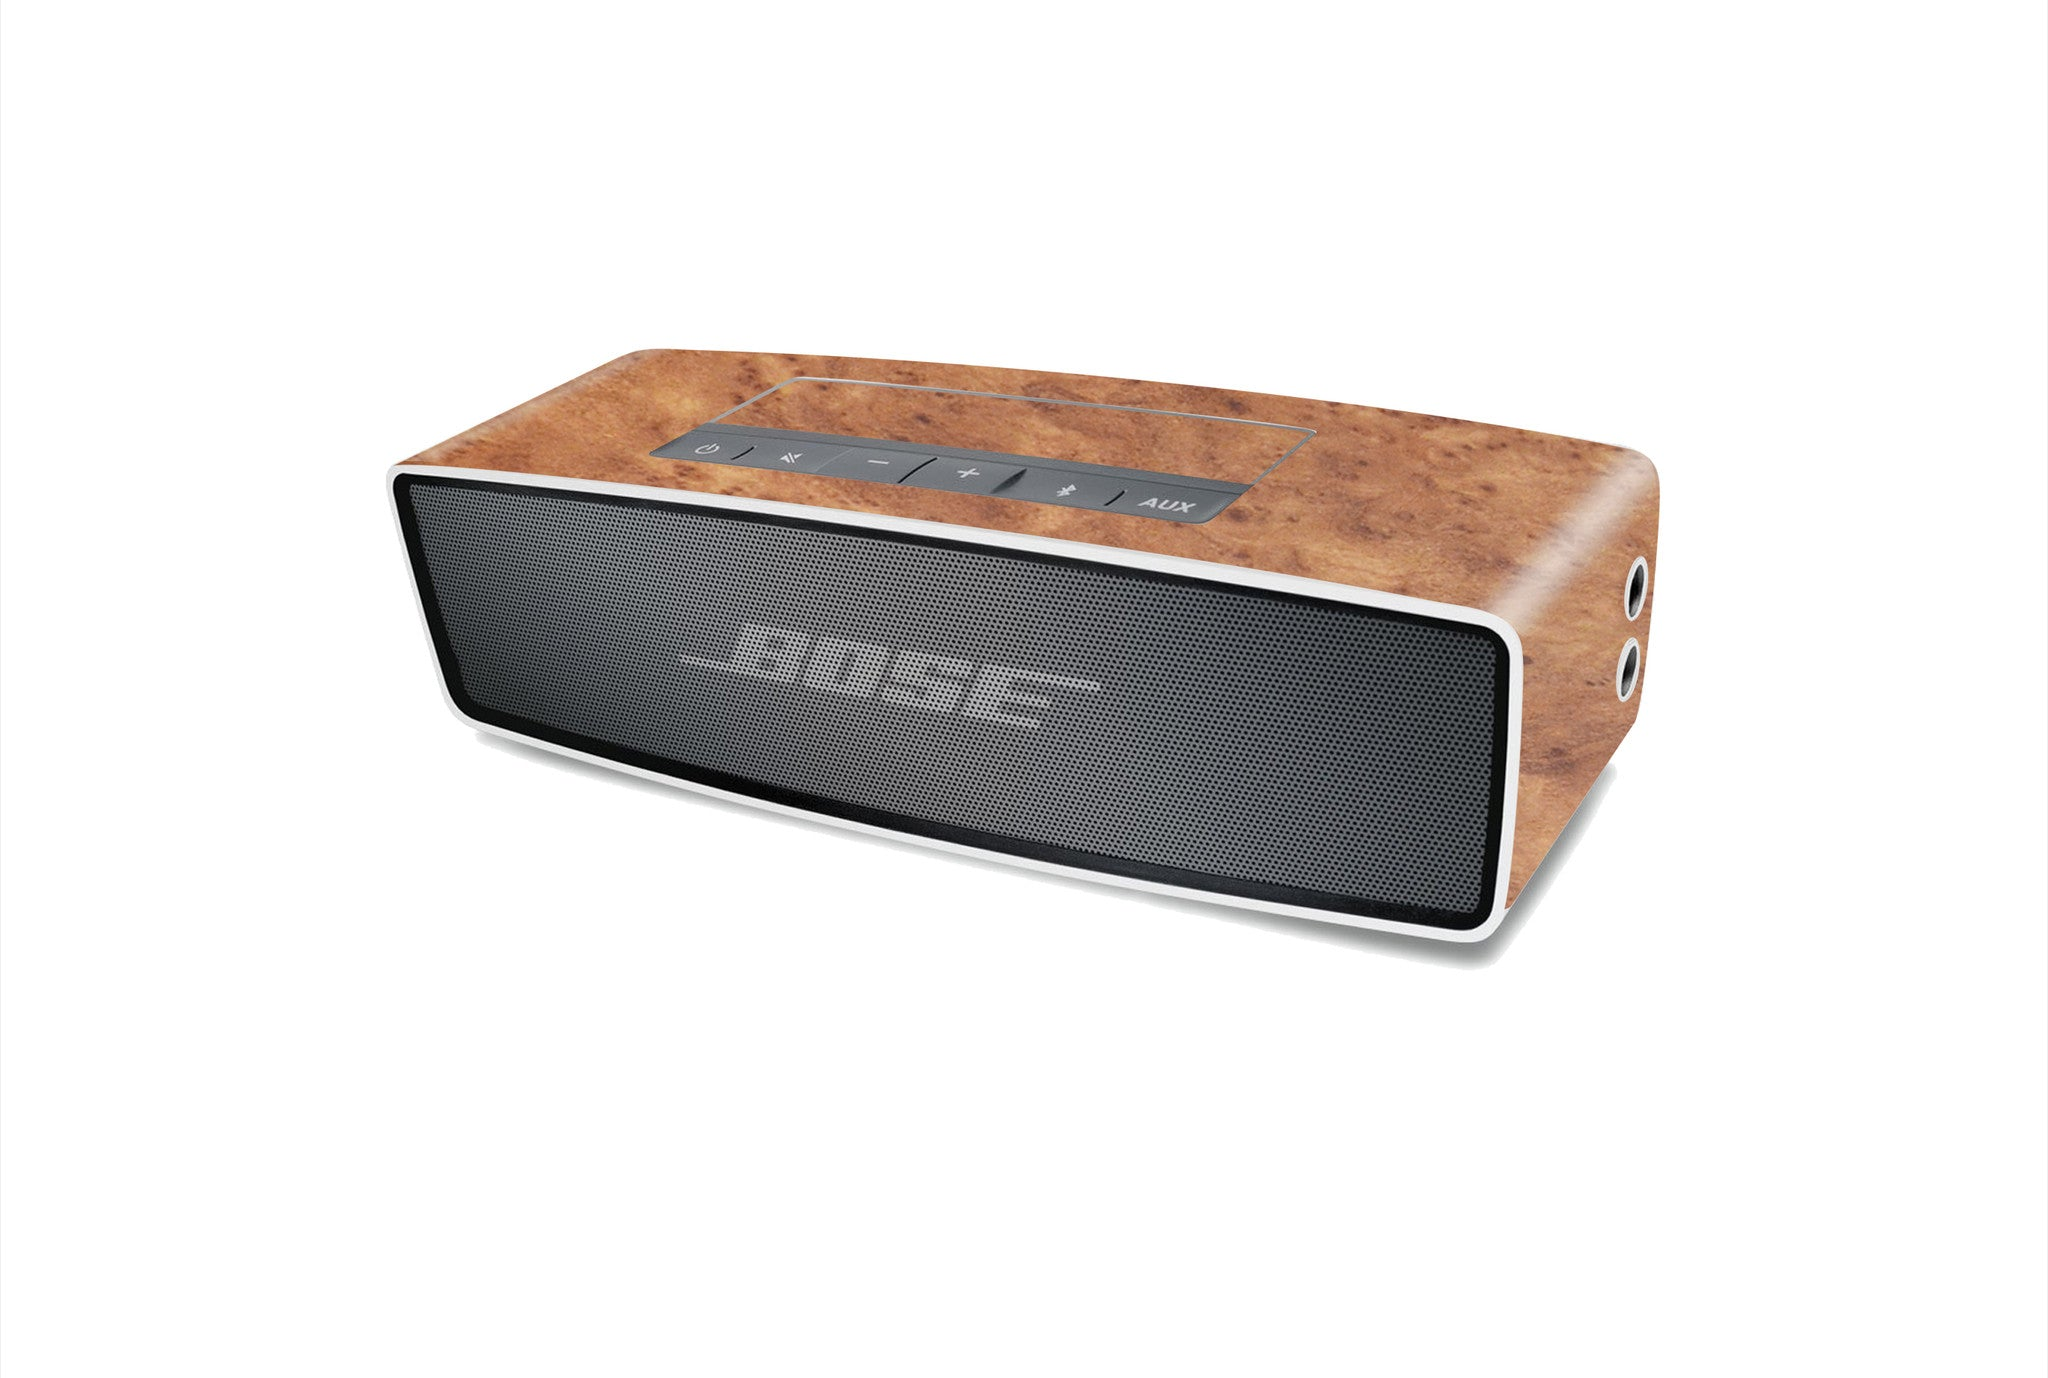 bose mini soundlink 2. light burl wood - bose soundlink mini 1, 2 skins soundlink b